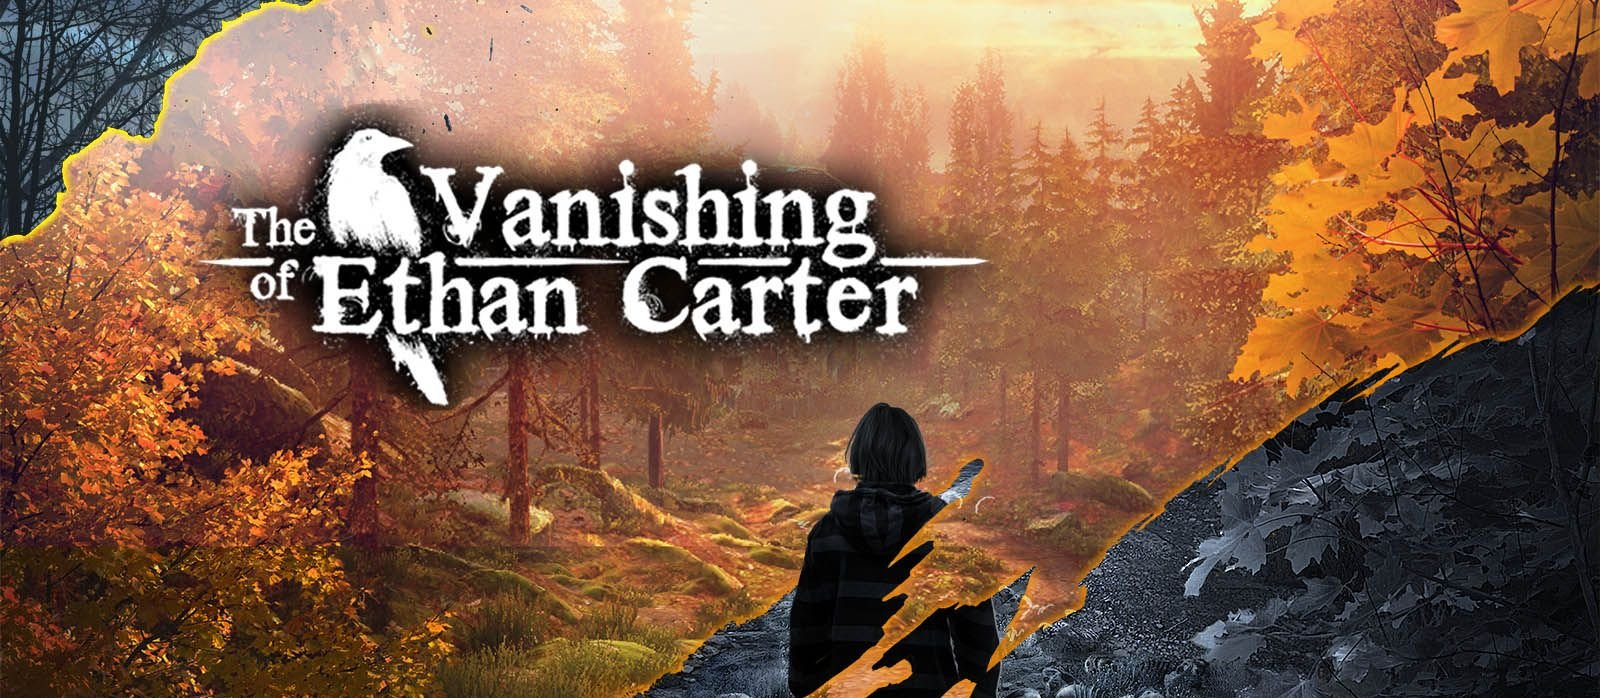 А вы играли в… Vanishing of Ethan Carter? - Изображение 1